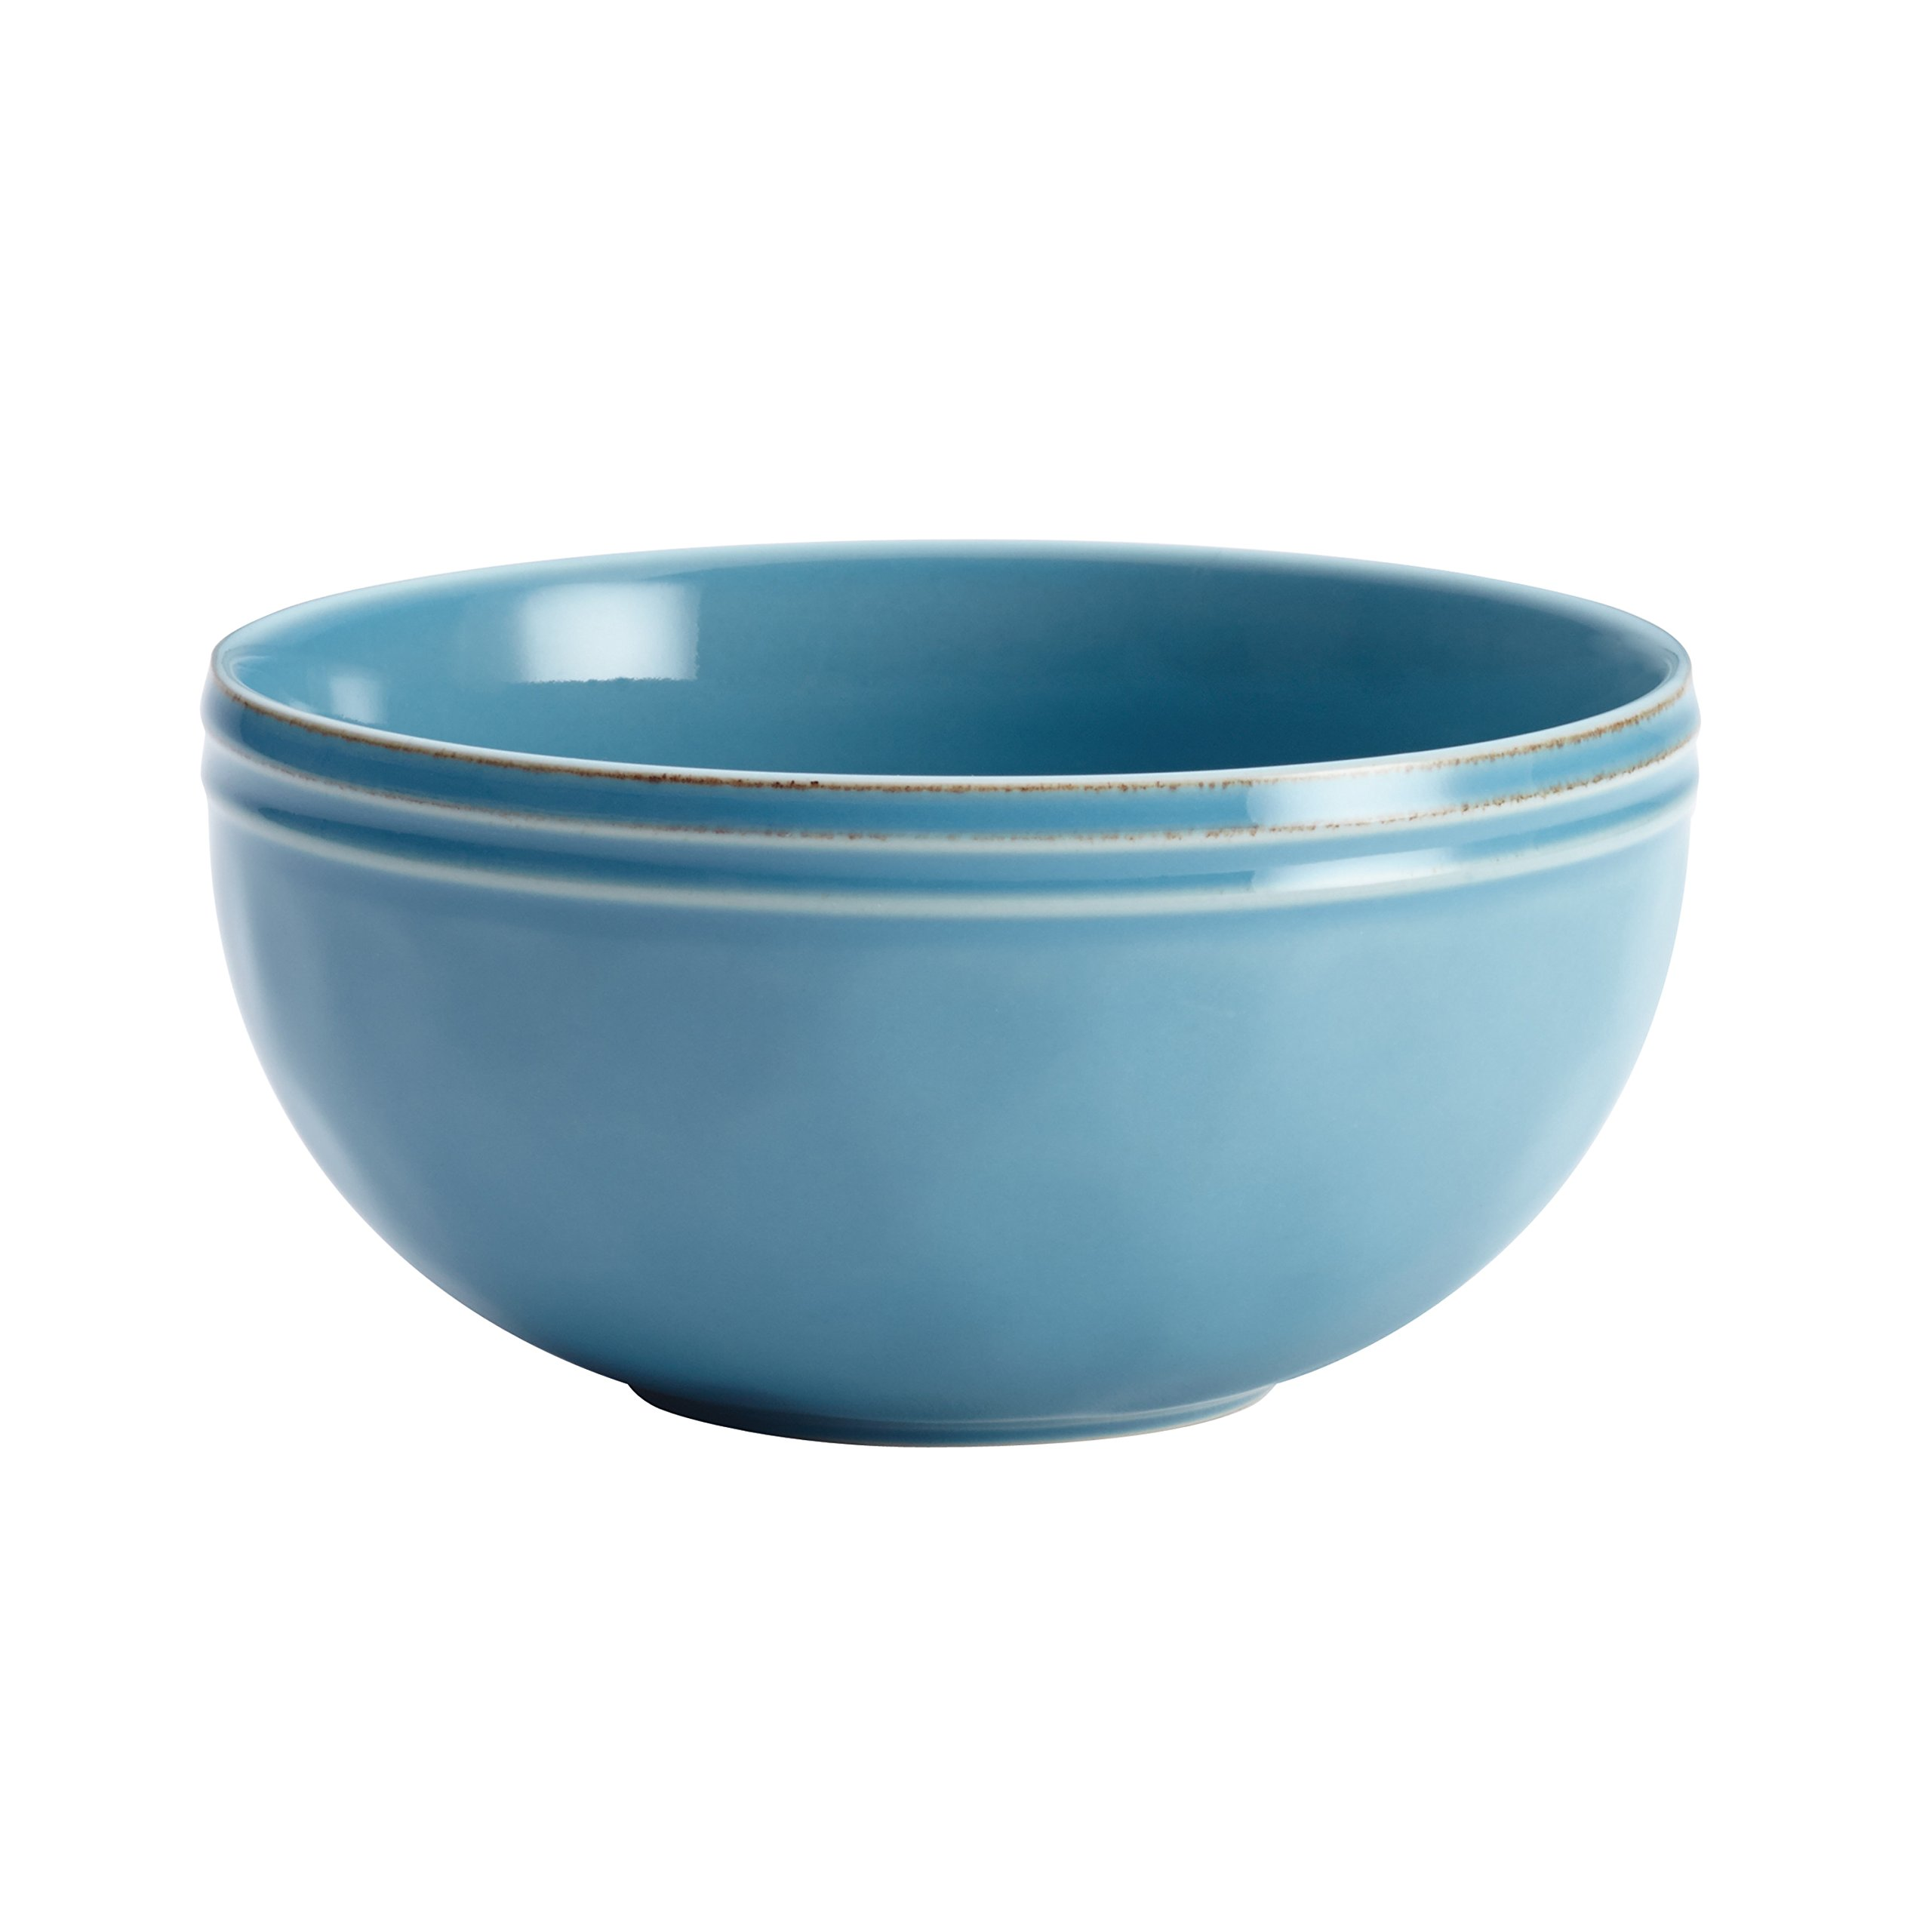 Rachael Ray Cucina Dinnerware 16-Piece Stoneware Dinnerware Set, Agave Blue by Rachael Ray (Image #9)